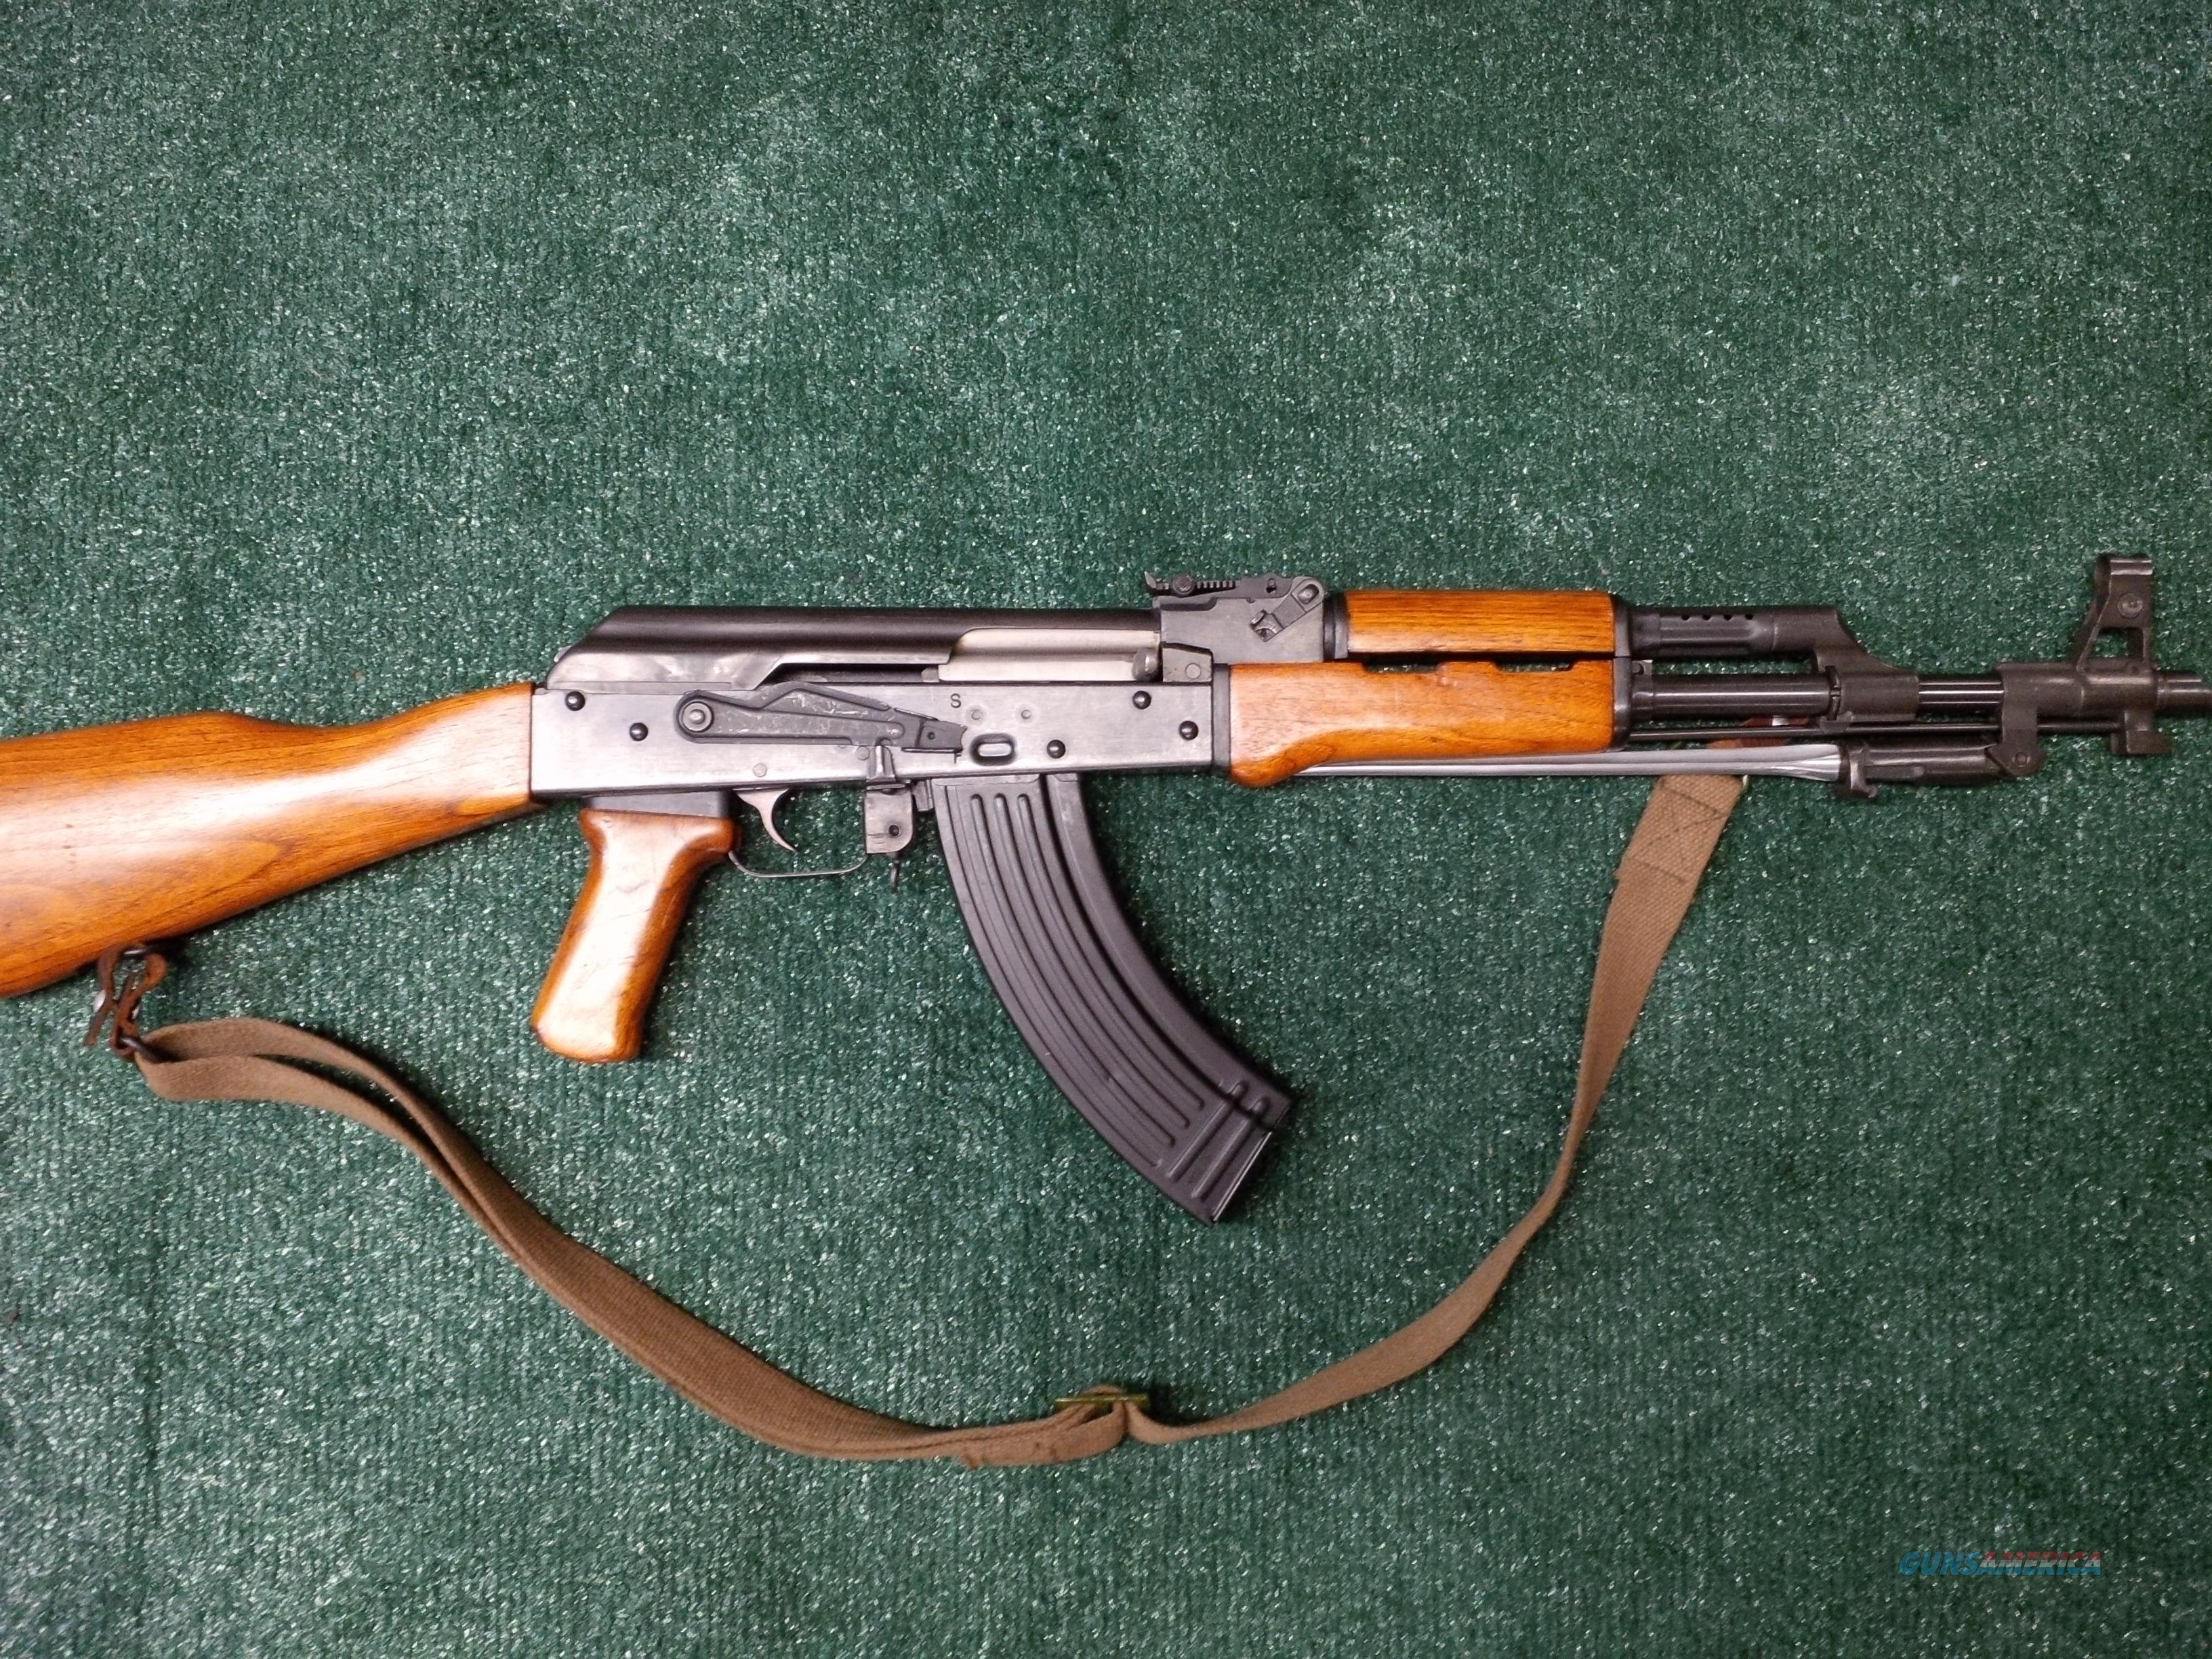 B-West AK 47 Semi Auto Rifle 7.62x39 Caliber PRICE REDUCED!!! Was $1995.00  Guns > Rifles > AK-47 Rifles (and copies) > Full Stock